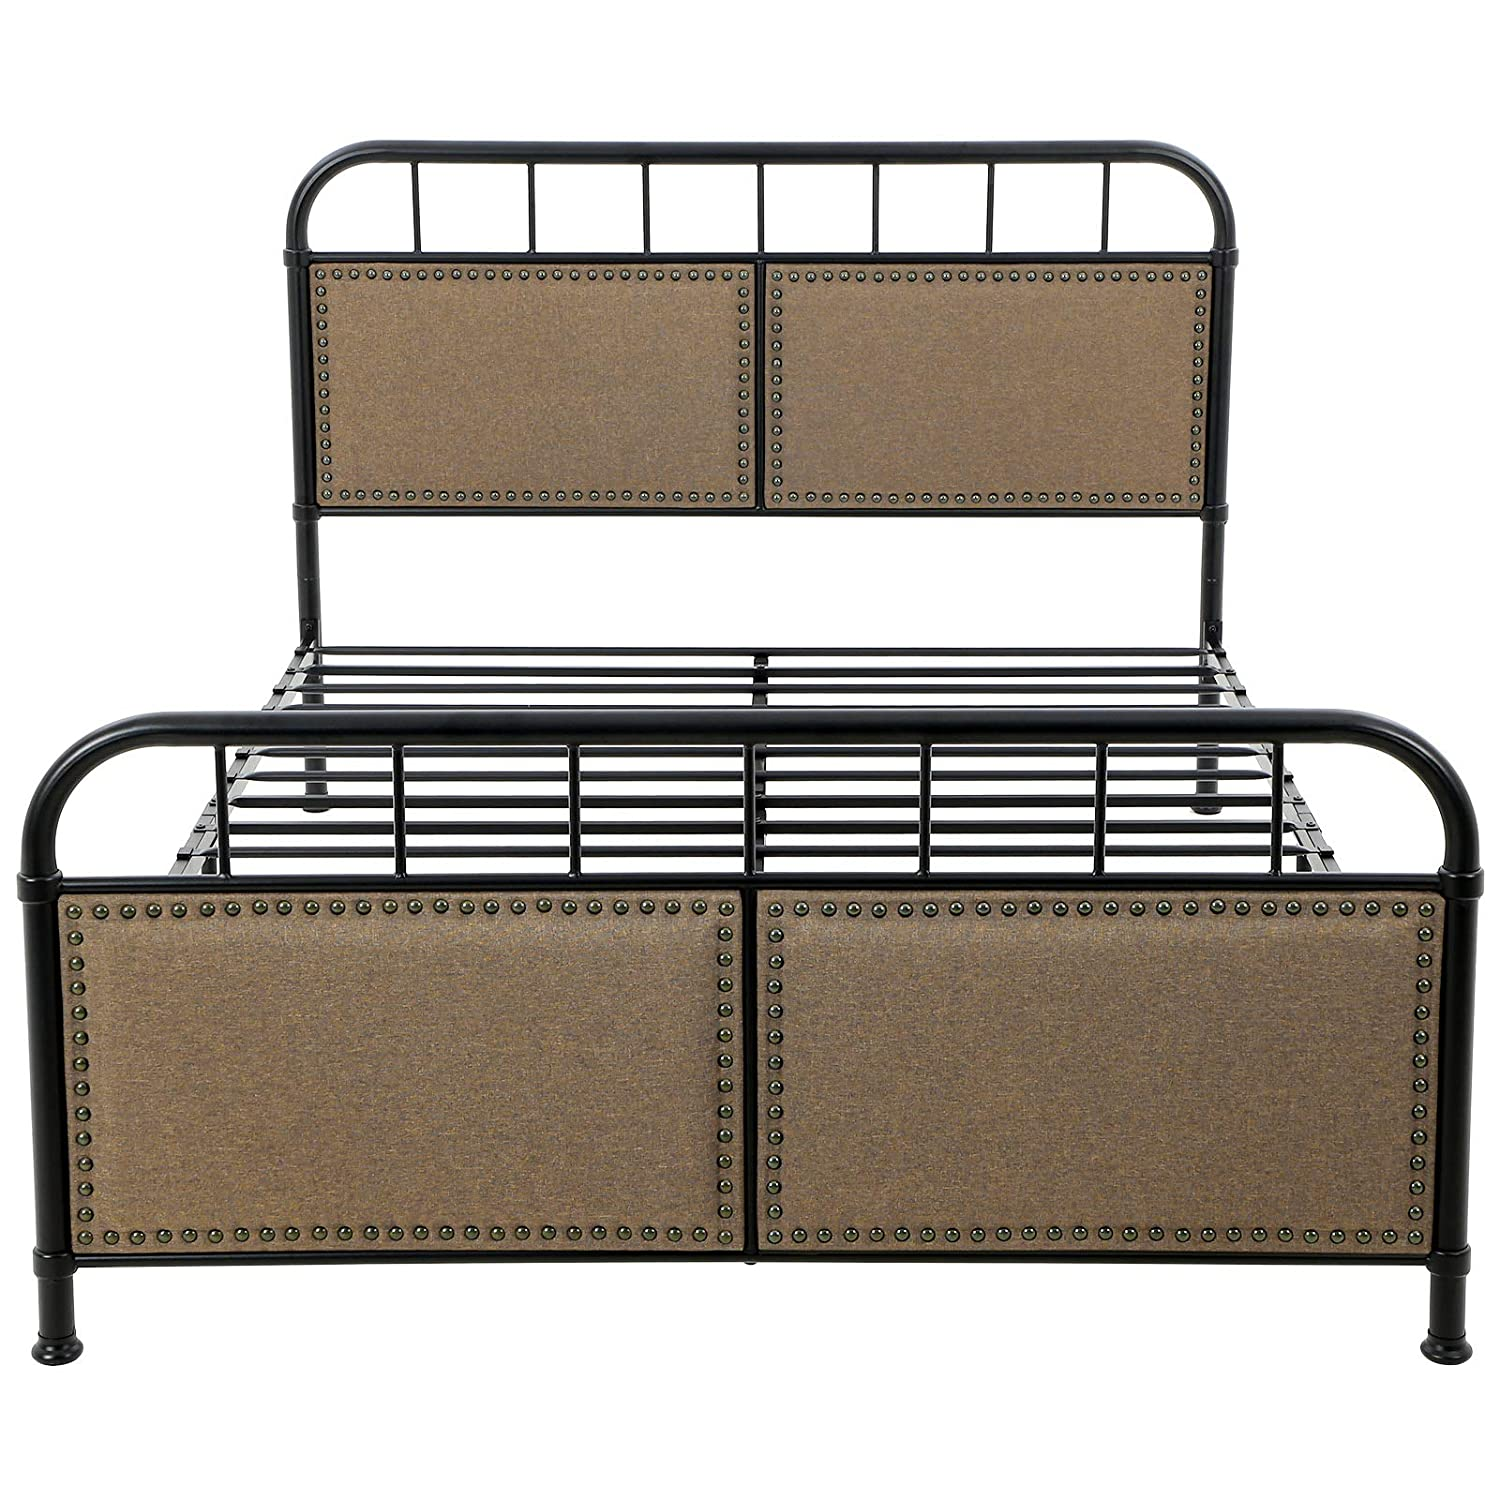 VASAGLE URMB024BE Metal Frame with Vintage Headboard Footboard, Upholstered Linen with Studs, No Box Spring Needed Platform, Under-Bed Storage, Industrial Style, Noise Free, Queen, Brown and Black